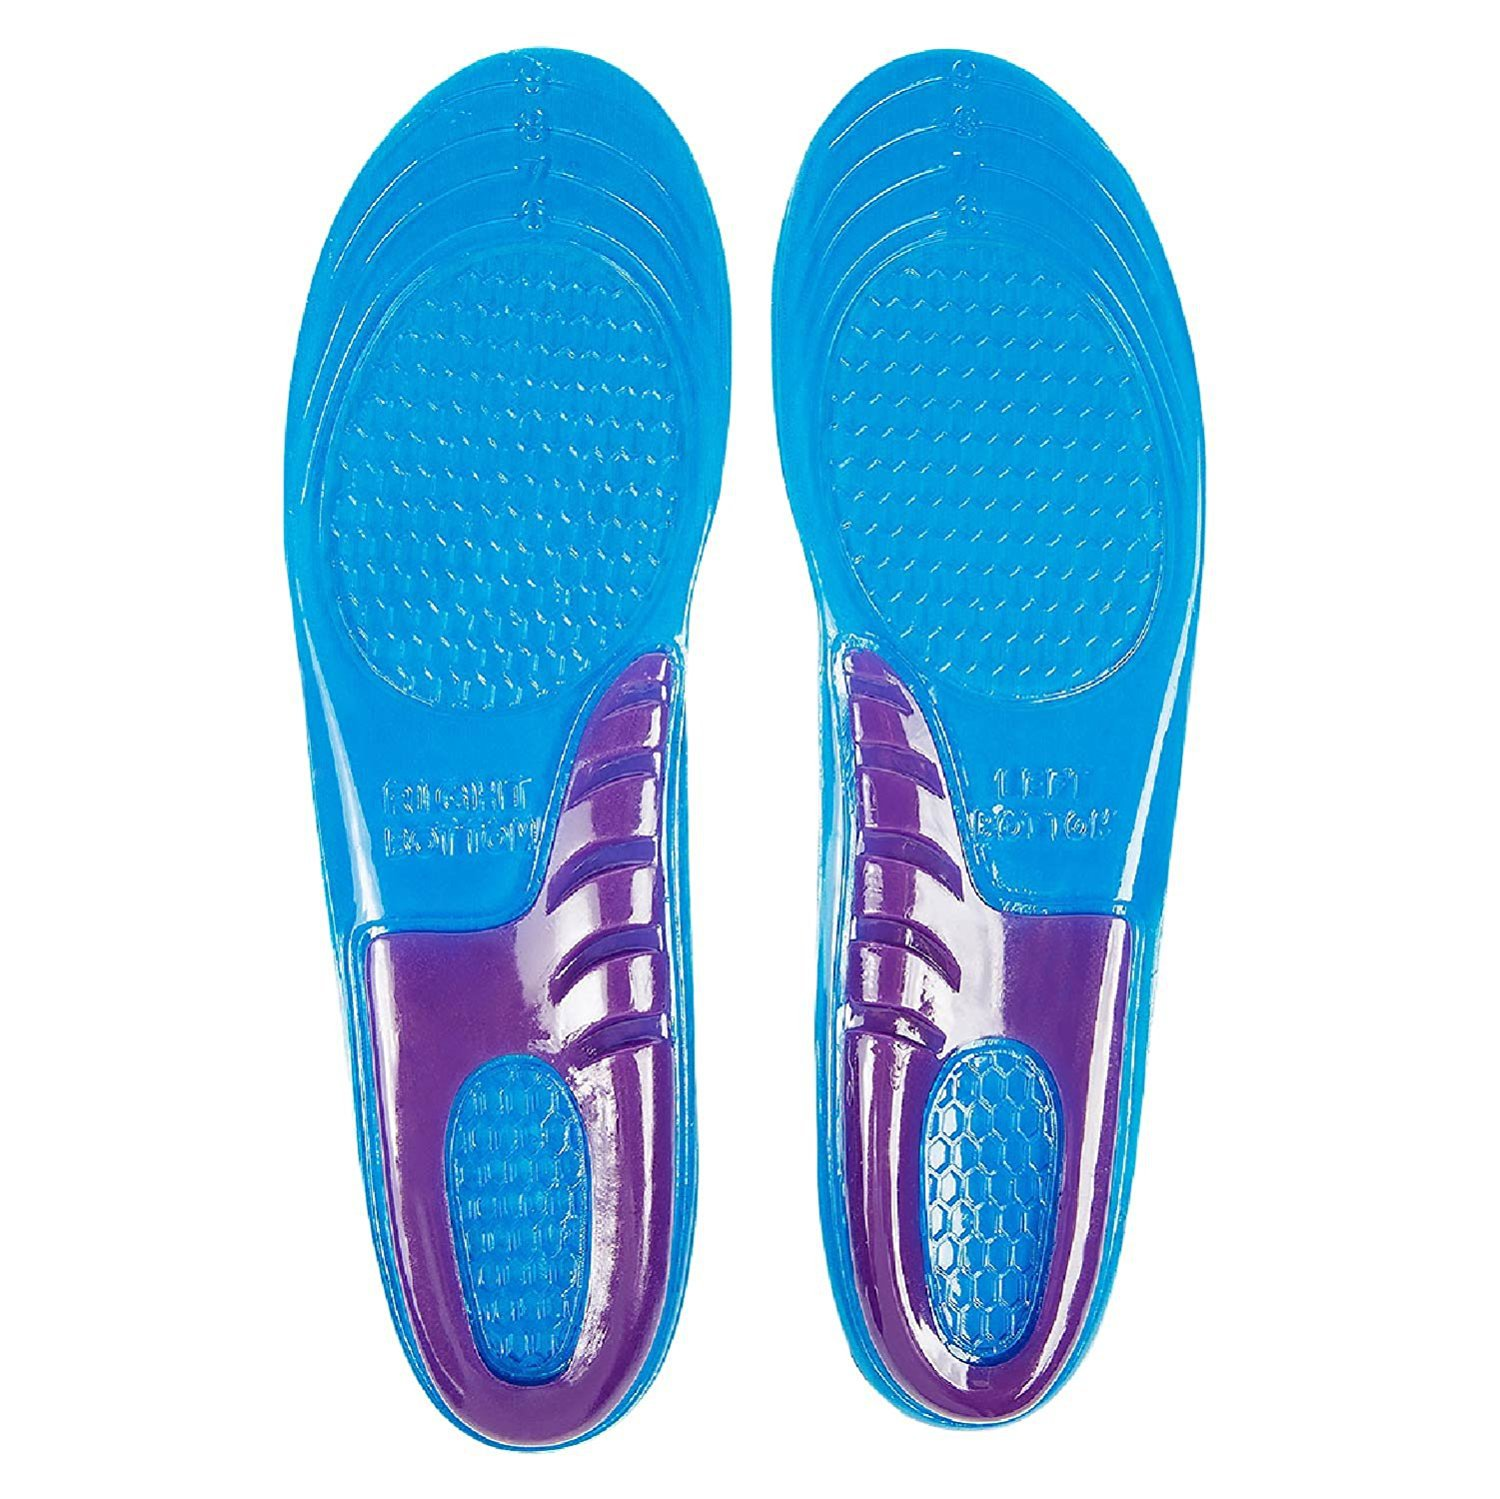 Military Training Shock Absorption Insole Sports Insoles Quality Soft Insole Thick Men And Women-Insole